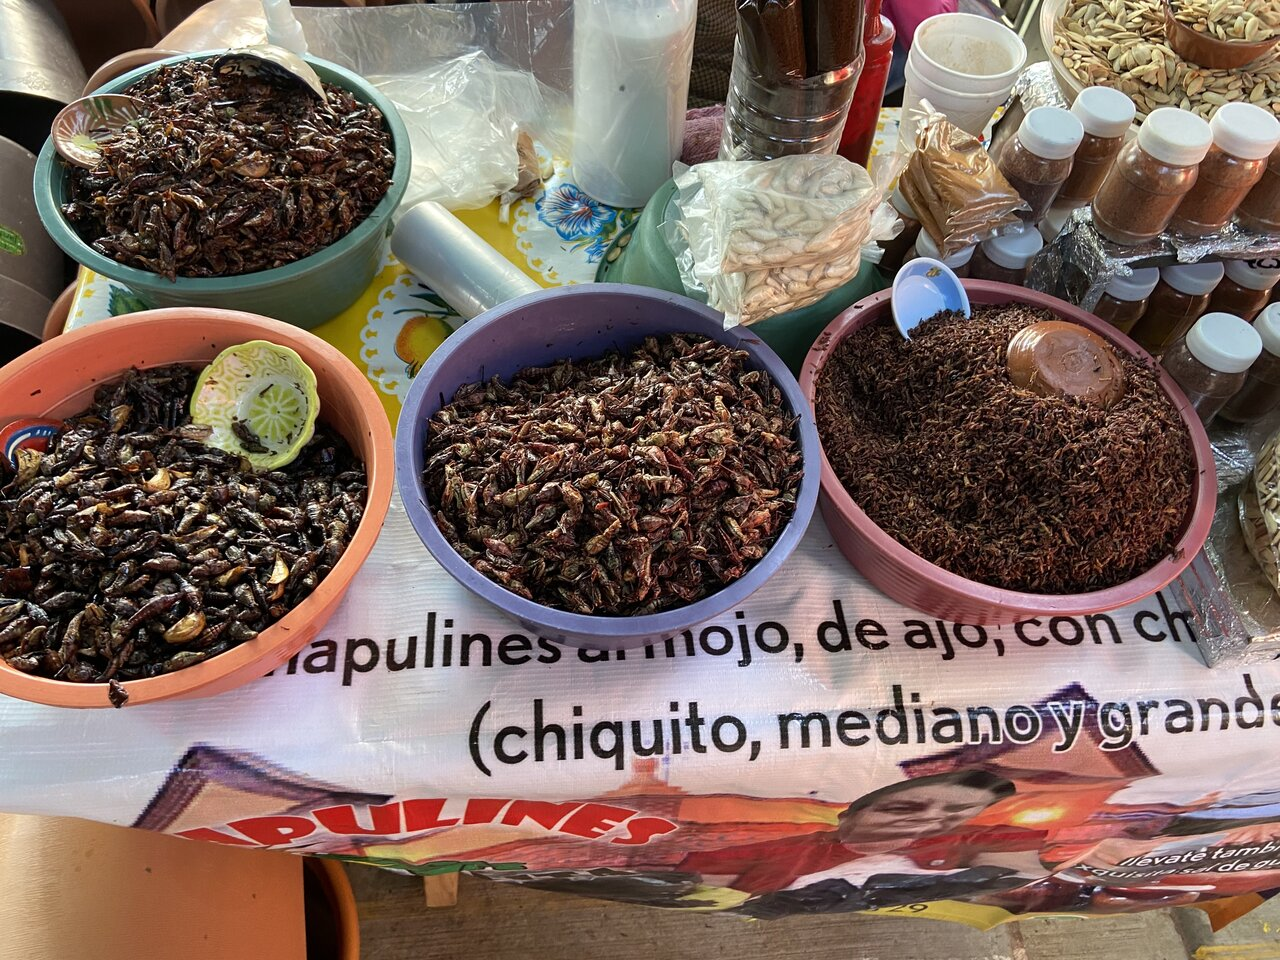 Grasshoppers at the market   Photo taken by Jazmin D